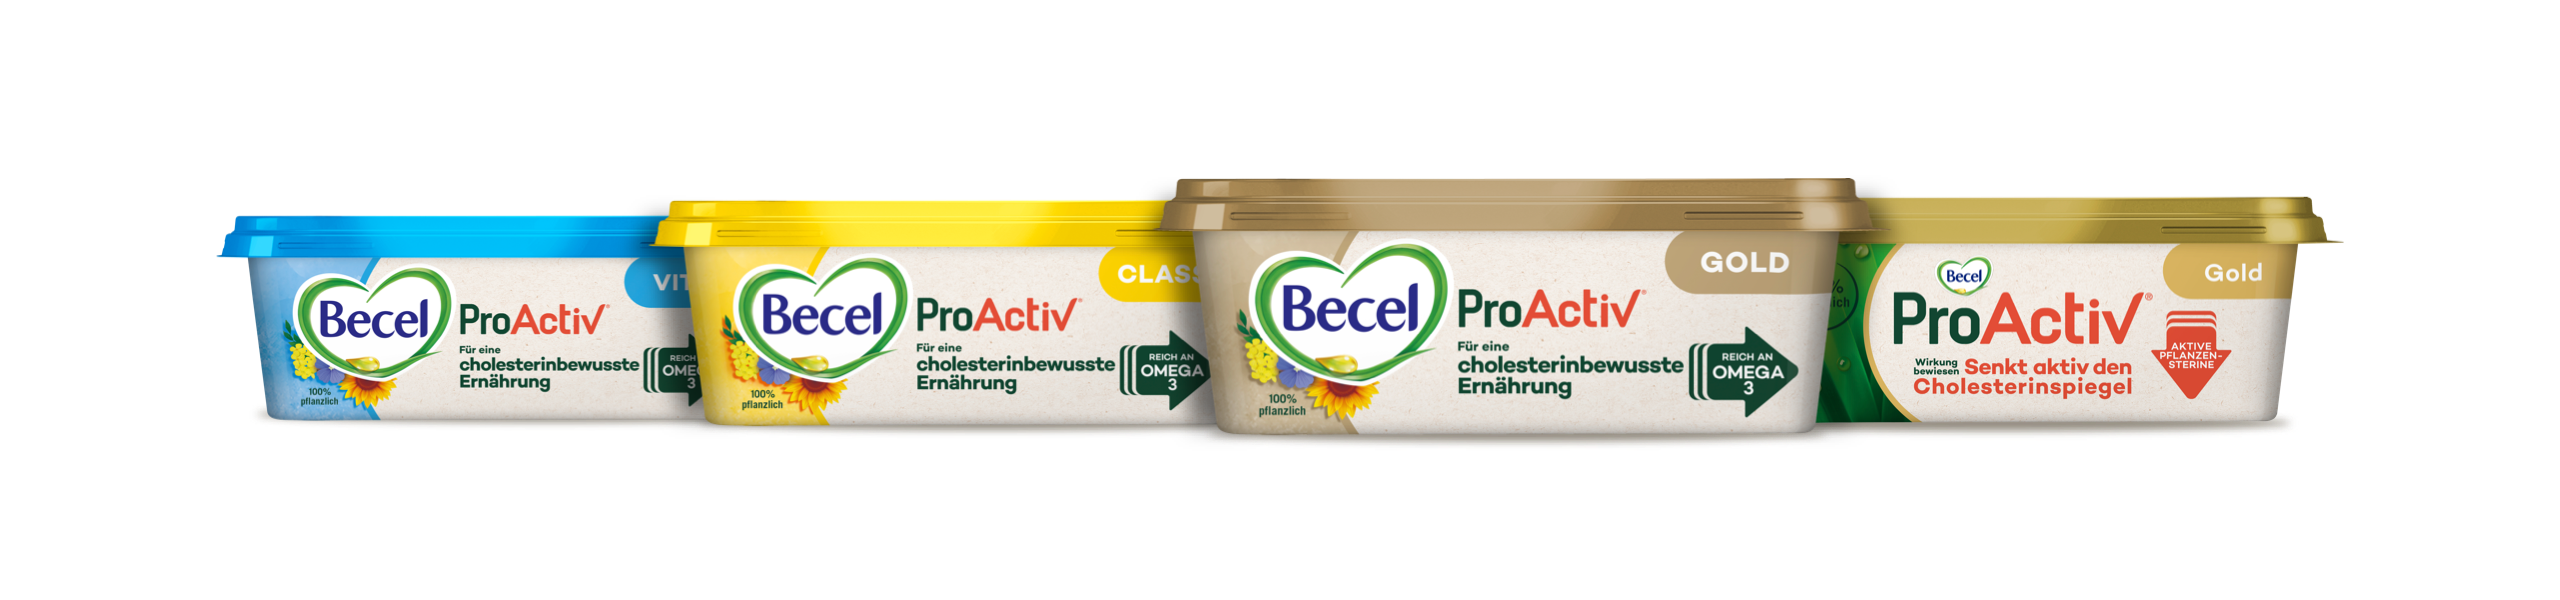 Becel ProActiv products